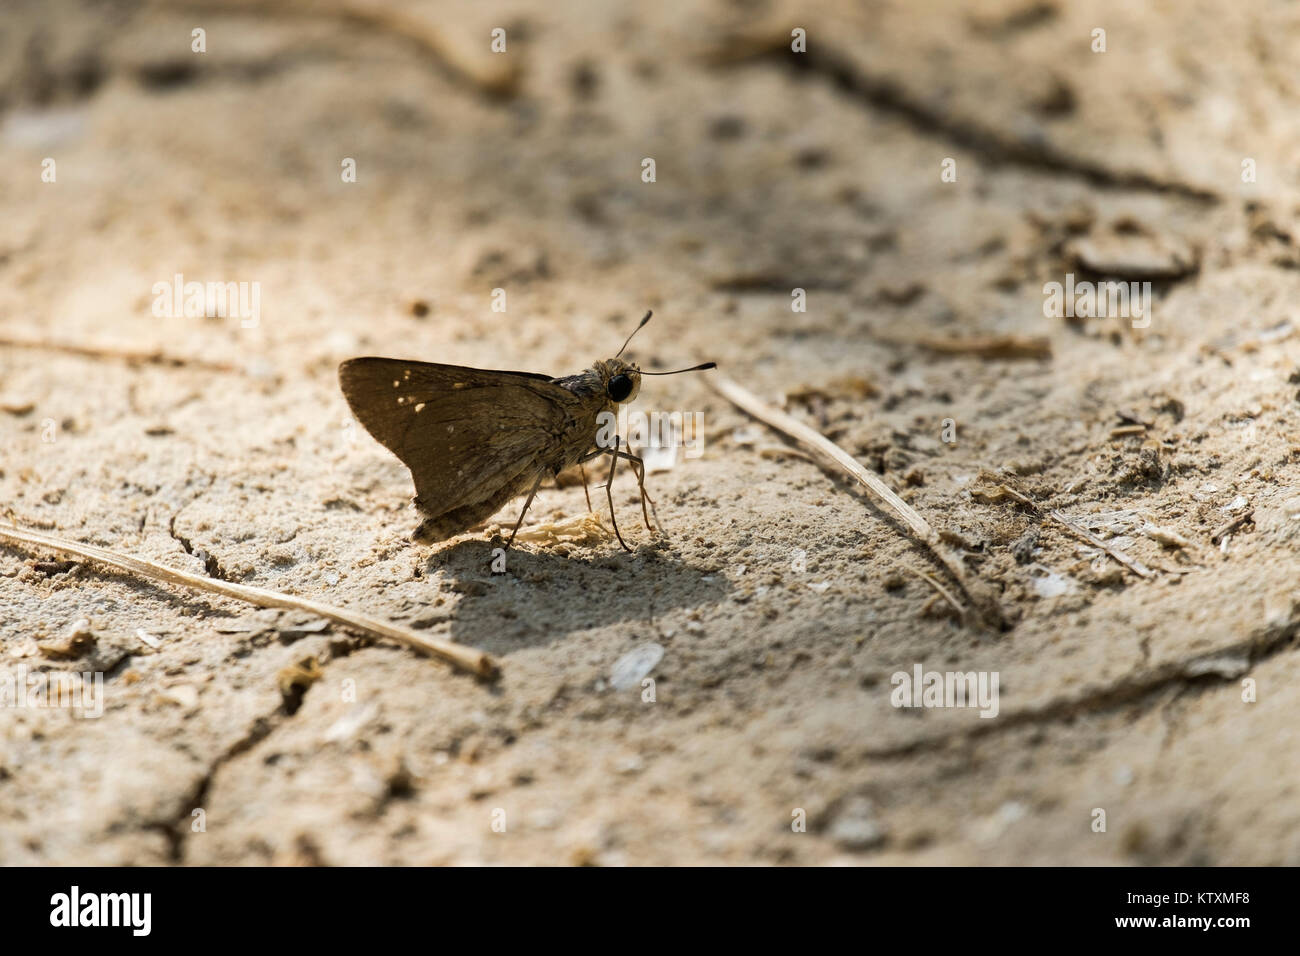 Small brown Israeli butterfly sits on the ground - Stock Image